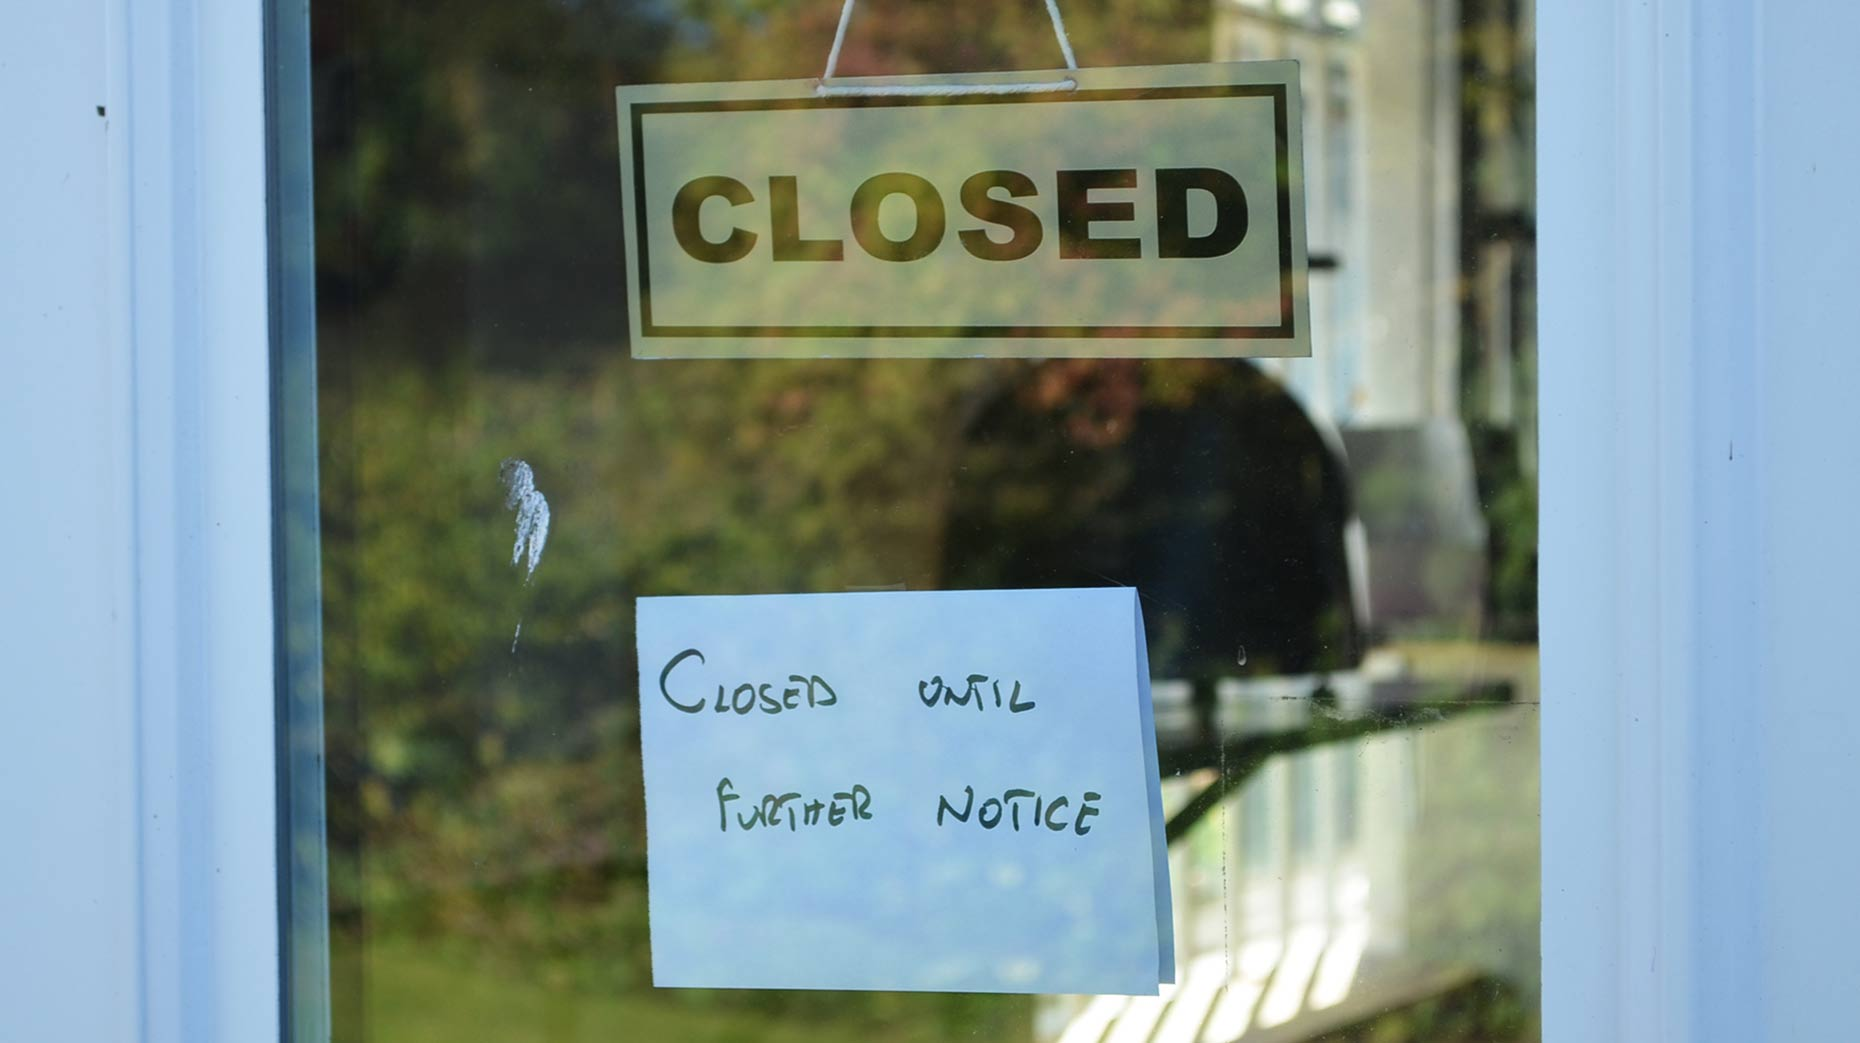 Closed for 'operational reasons'.